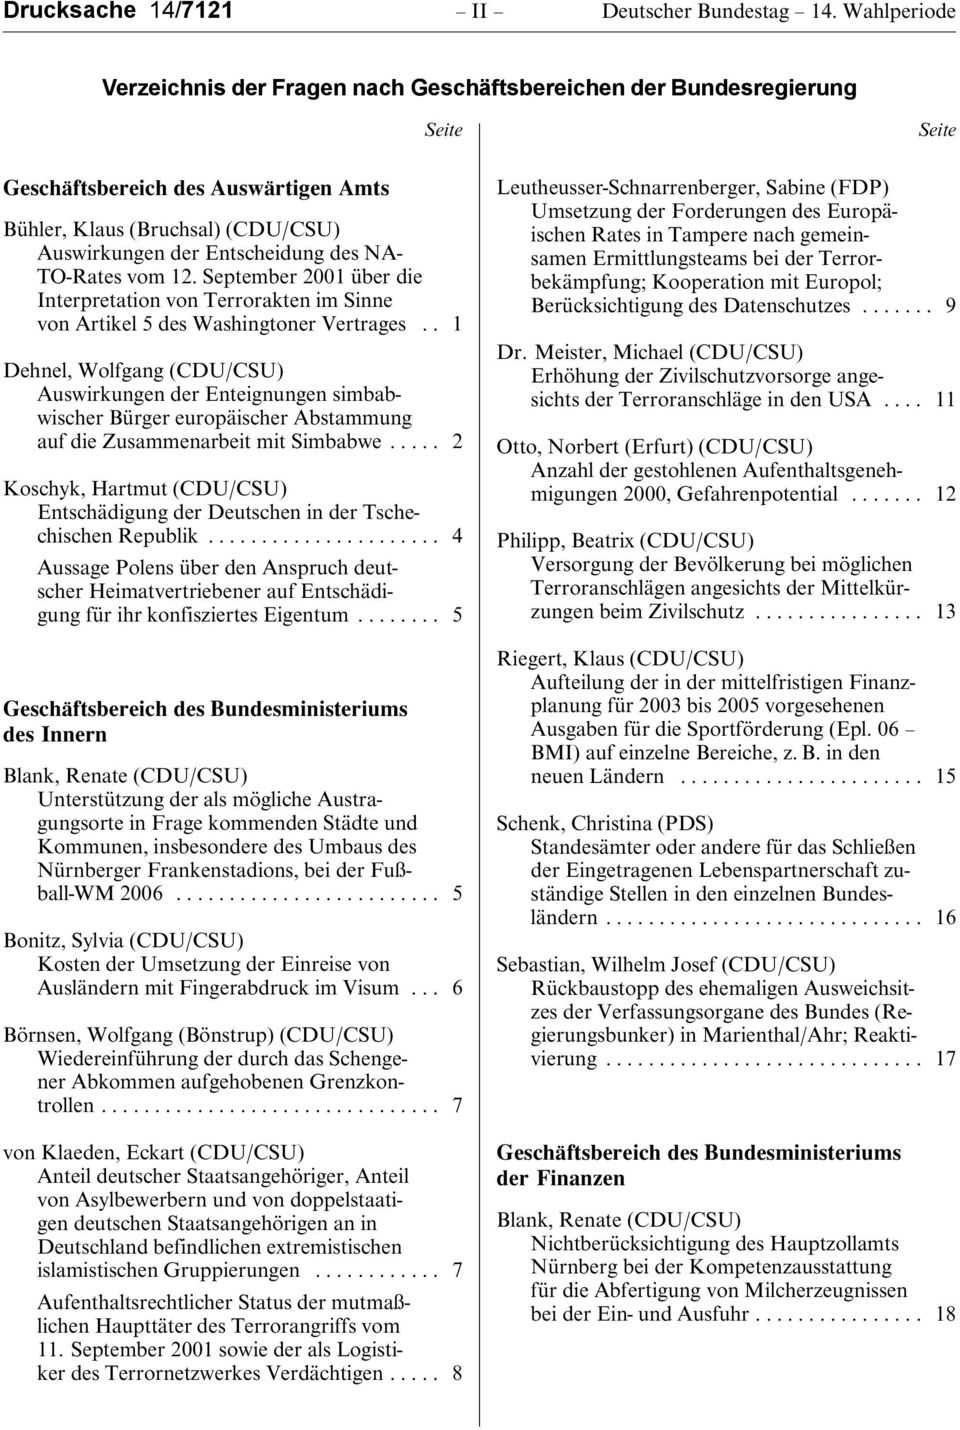 TO-Rates vom 12. September 2001 über die Interpretation von Terrorakten im Sinne von Artikel 5 des Washingtoner Vertrages.